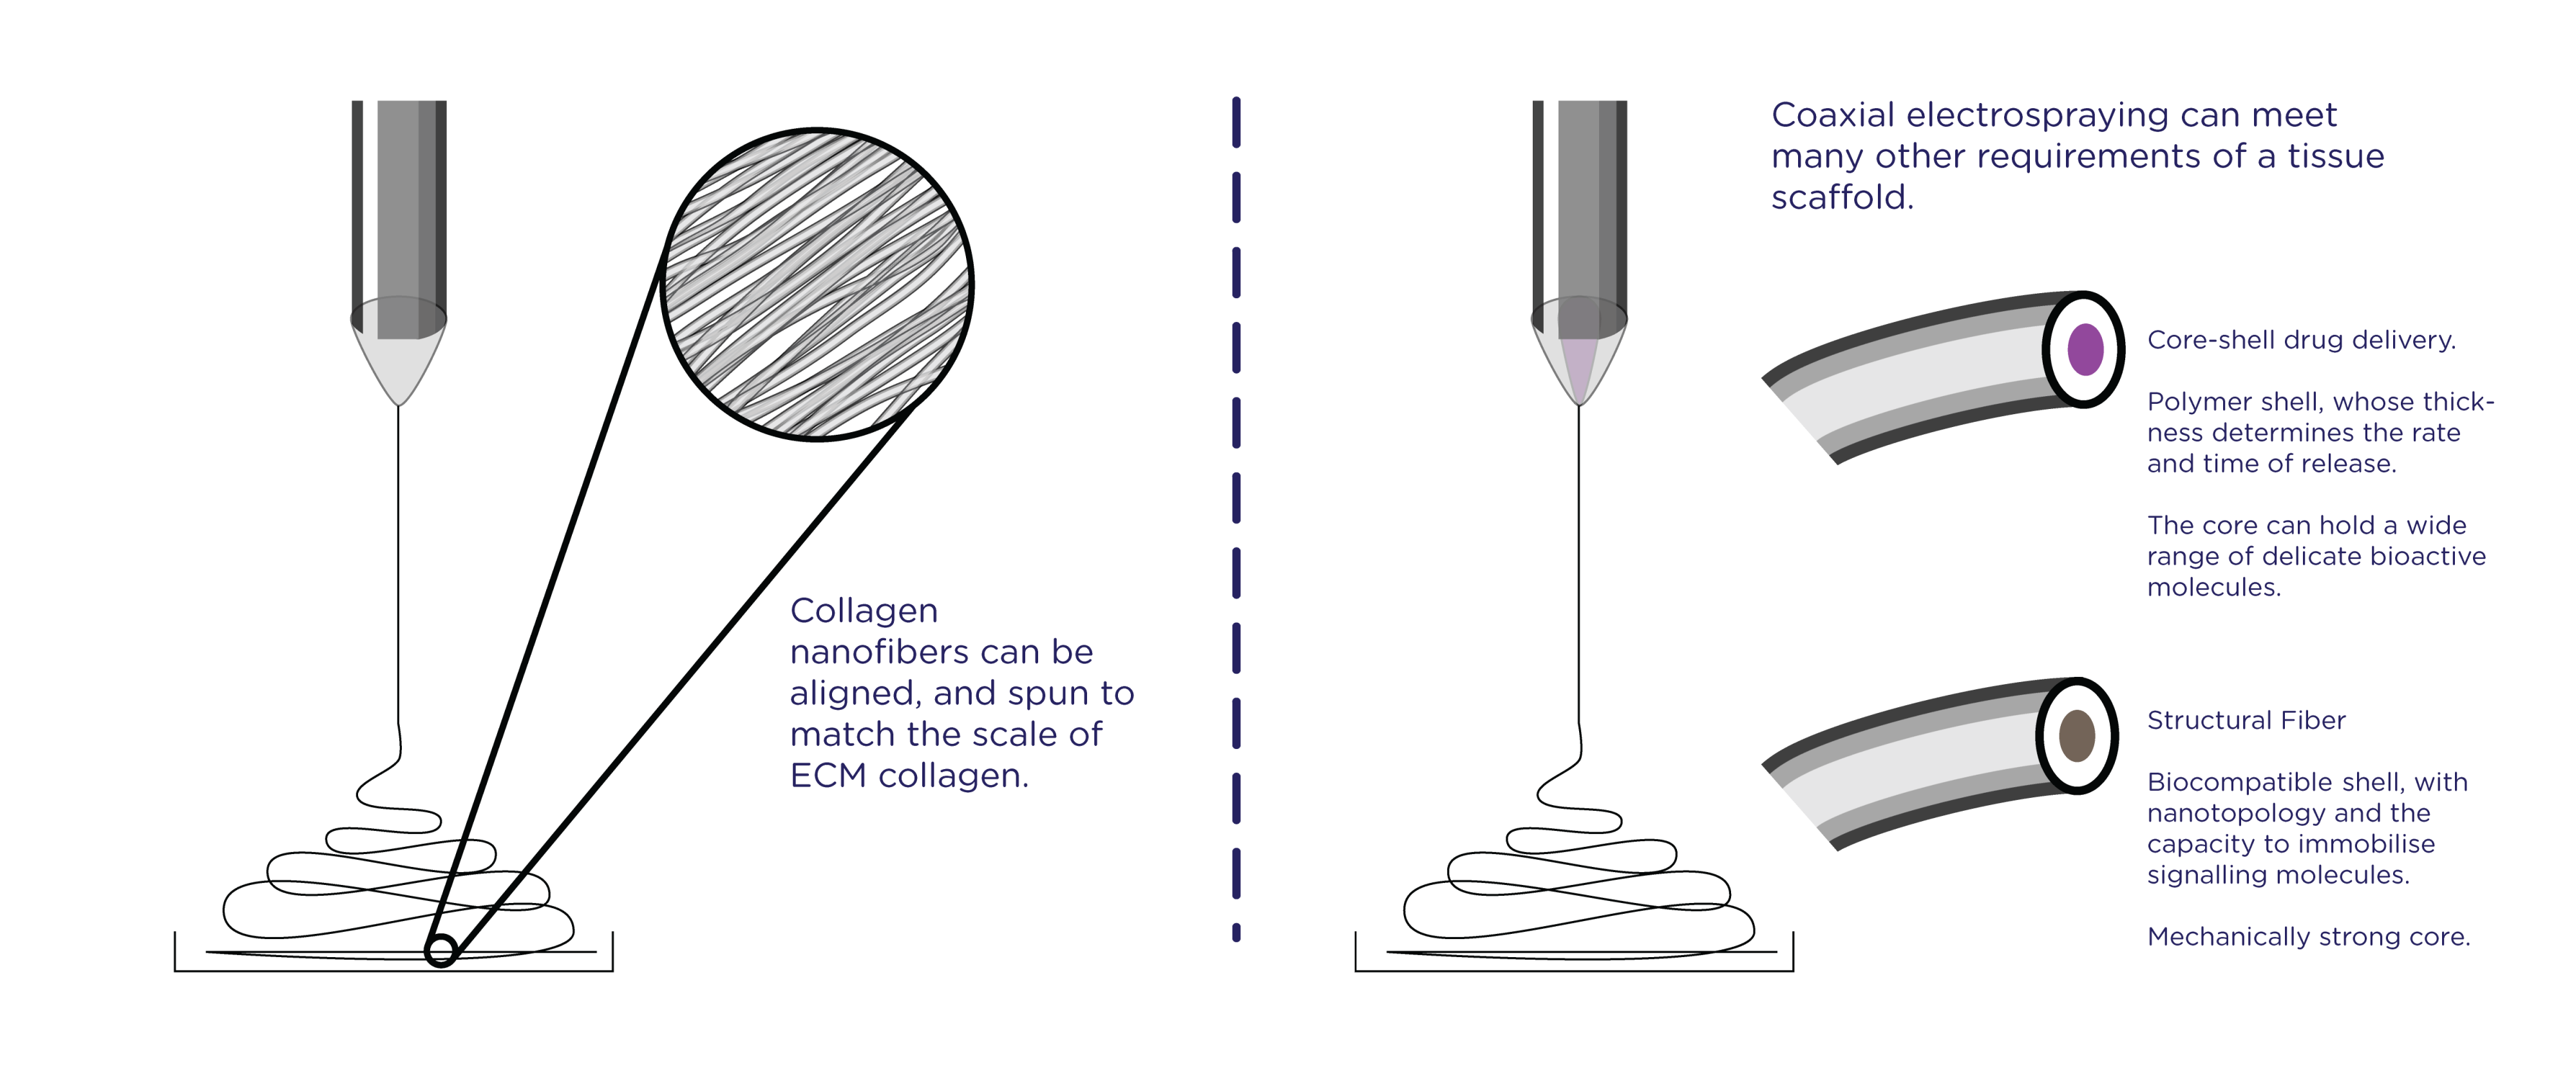 (A): Nanofibrous mats vs ECM. (B): Coaxial electrospinning for drug delivery, and for extra-strong biocompatible fibers.